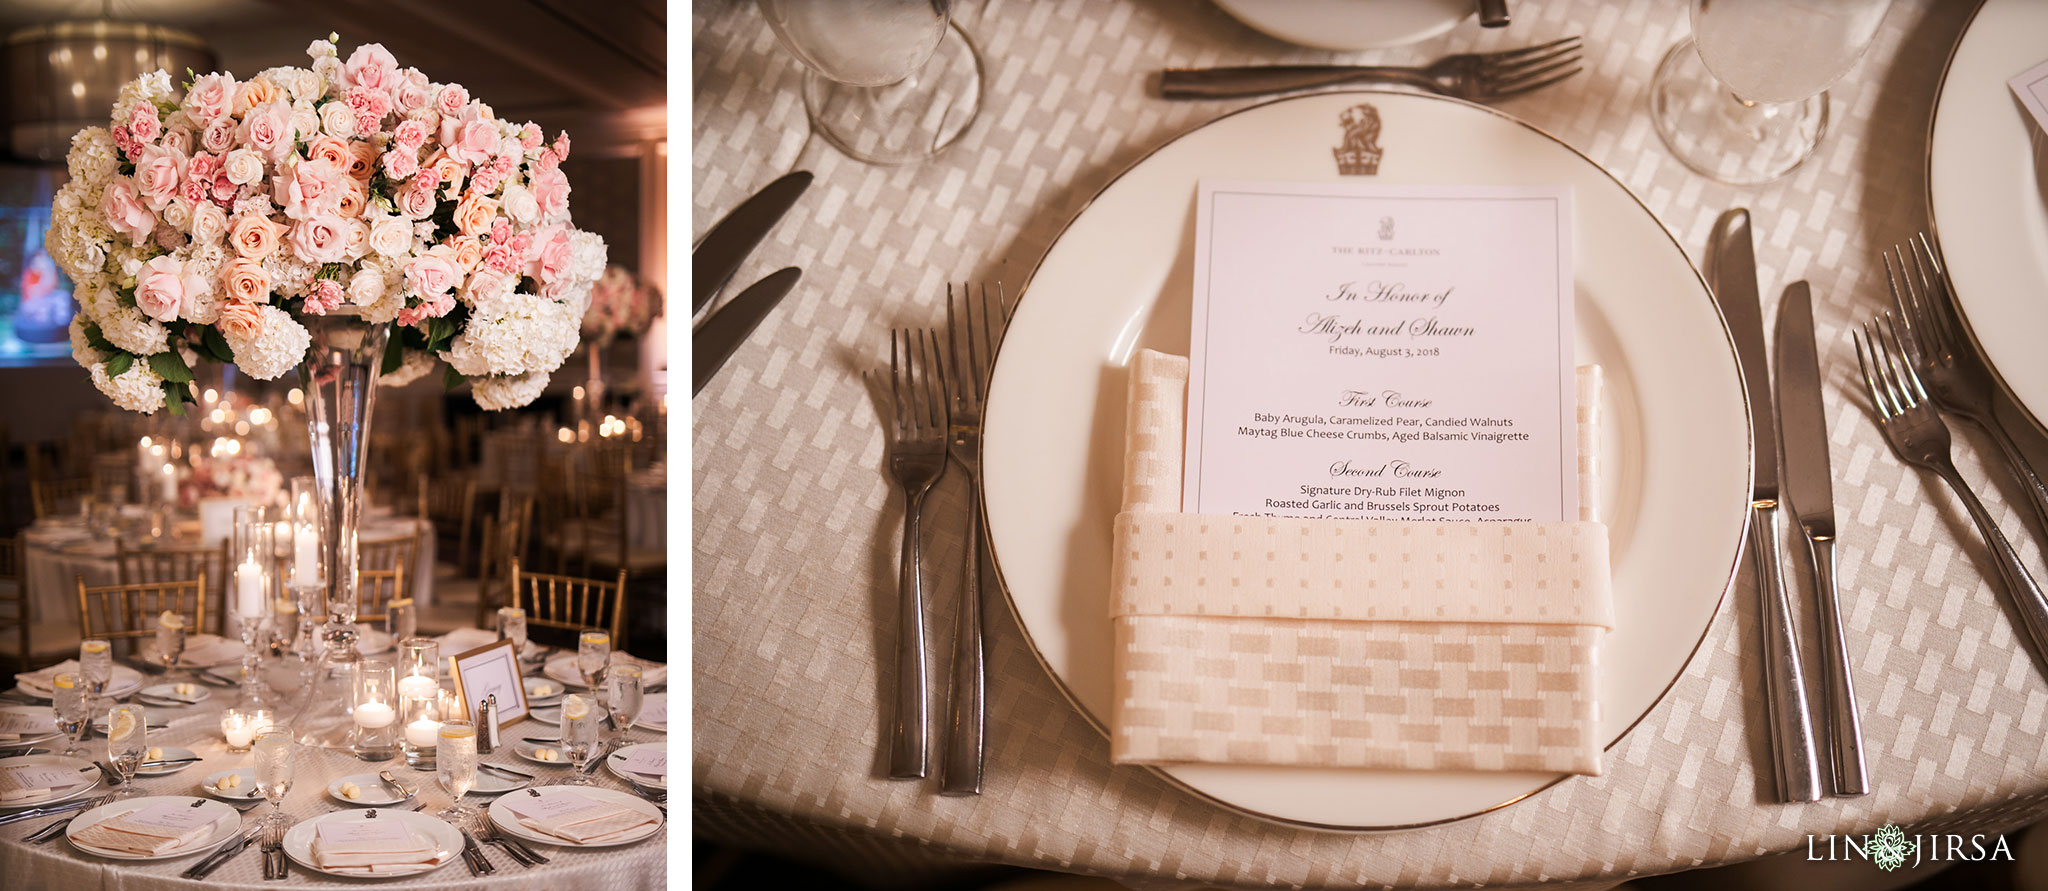 028 ritz carlton laguna niguel south asian wedding reception photography